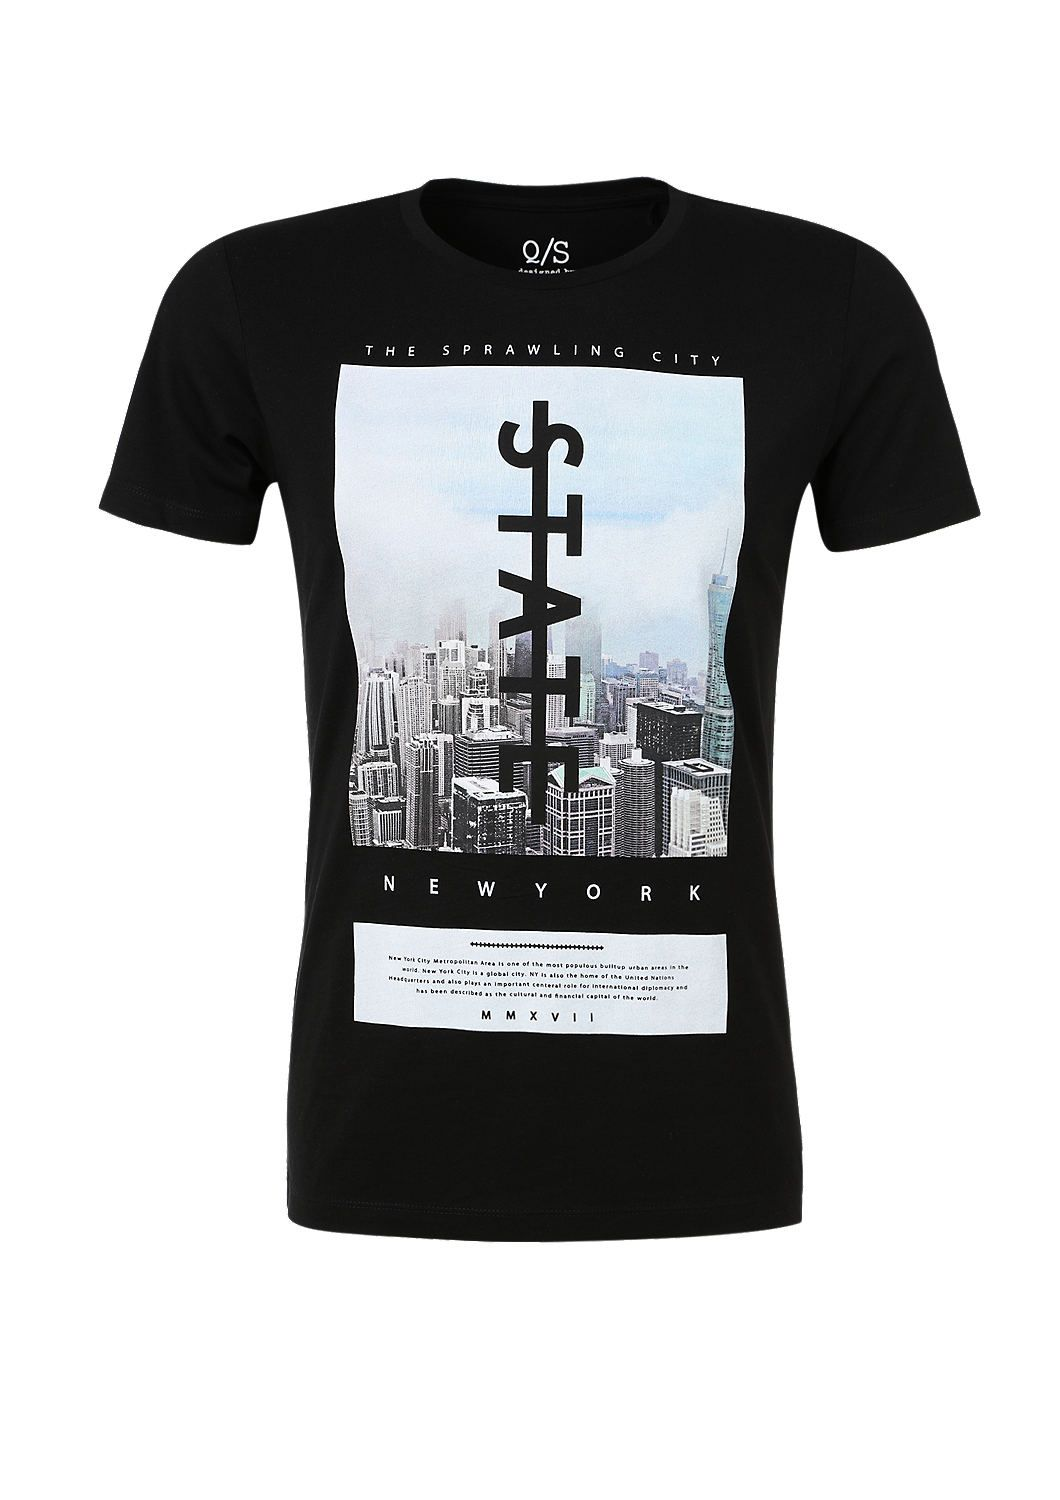 T Shirt With A New York Print From S Oliver Discover The Latest Fashions Online For Women Men A Shirt Print Design Shirt Design Inspiration Tee Shirt Designs